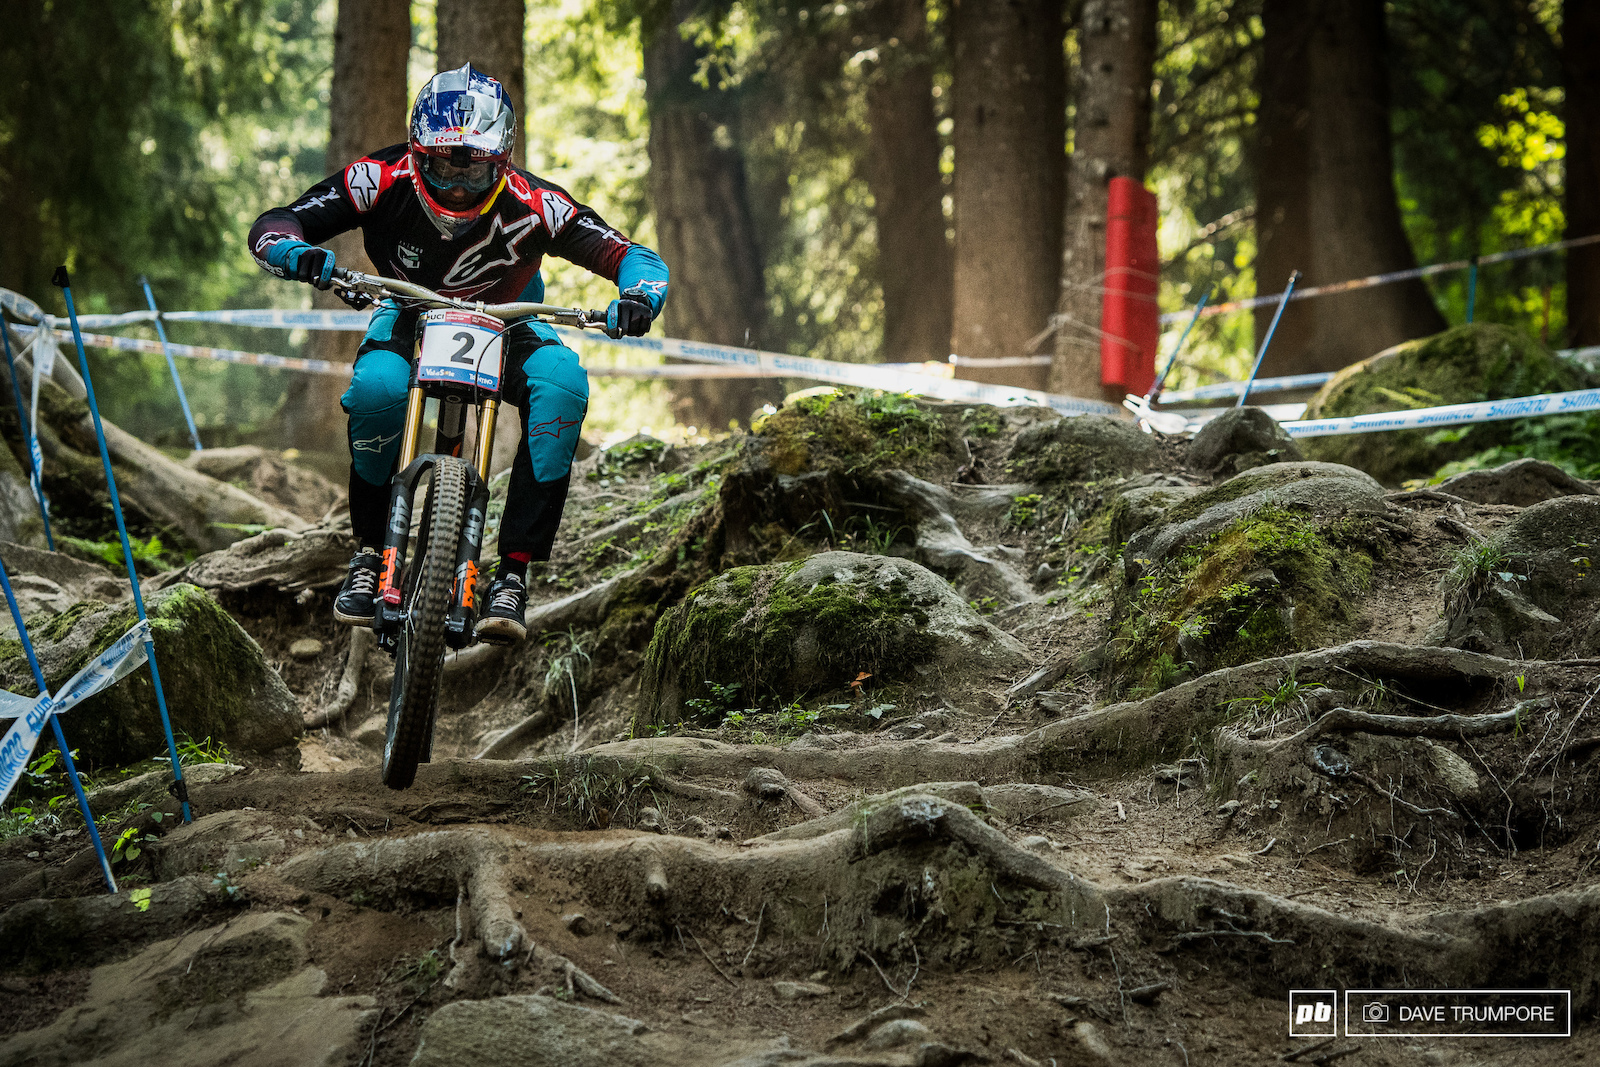 Gwin is on a mission this weekend and is doing everything he can to grab the overall out from under Greg Minnaar. A win today in qualifying by just 0.17 seconds gets him that much closer.